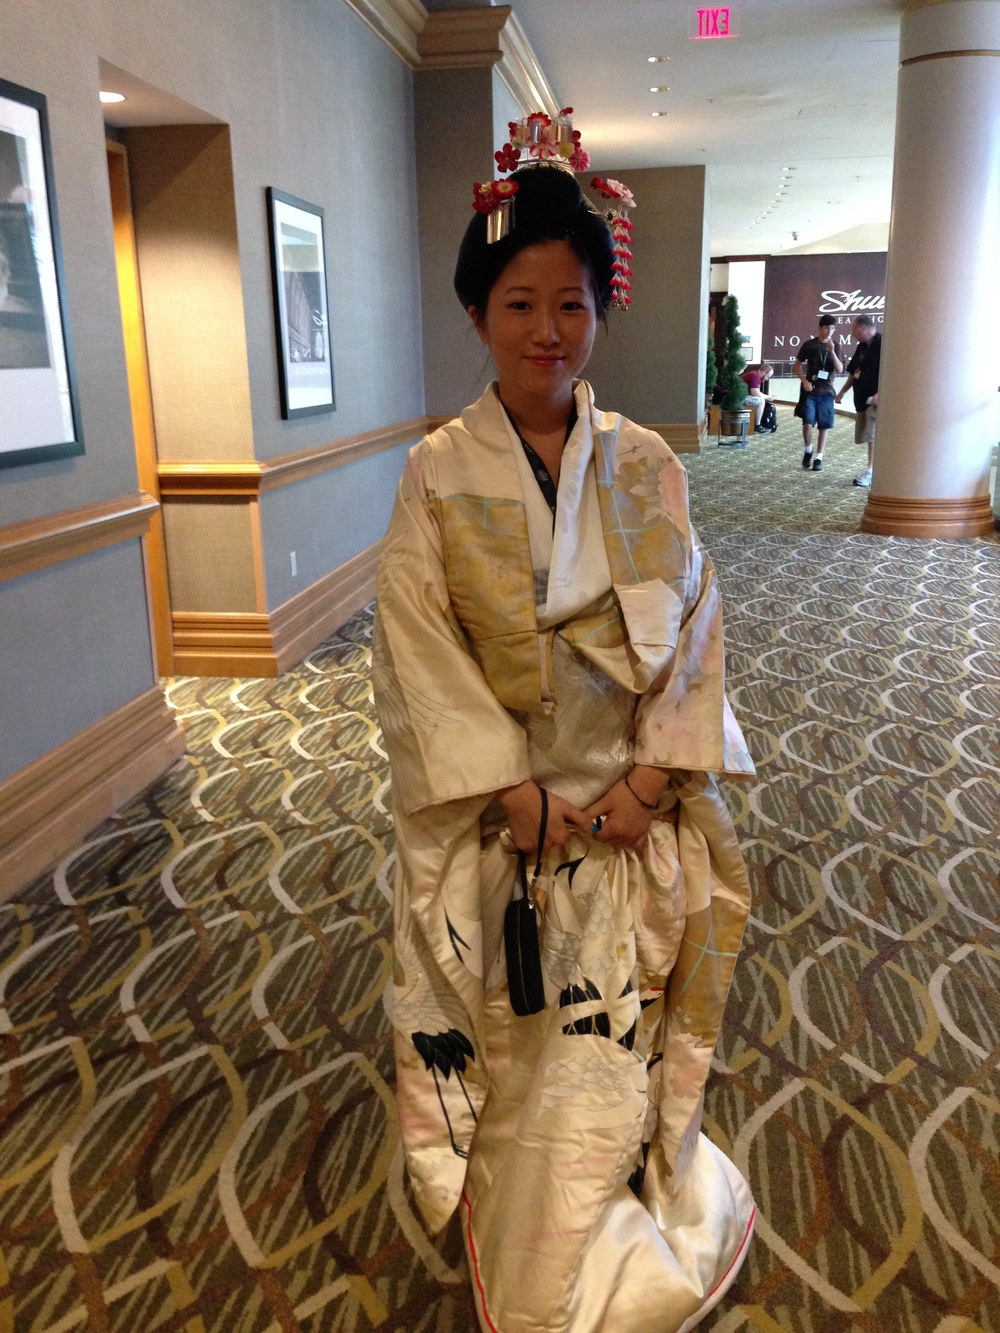 She did a fantastic job, the kimono looked great!